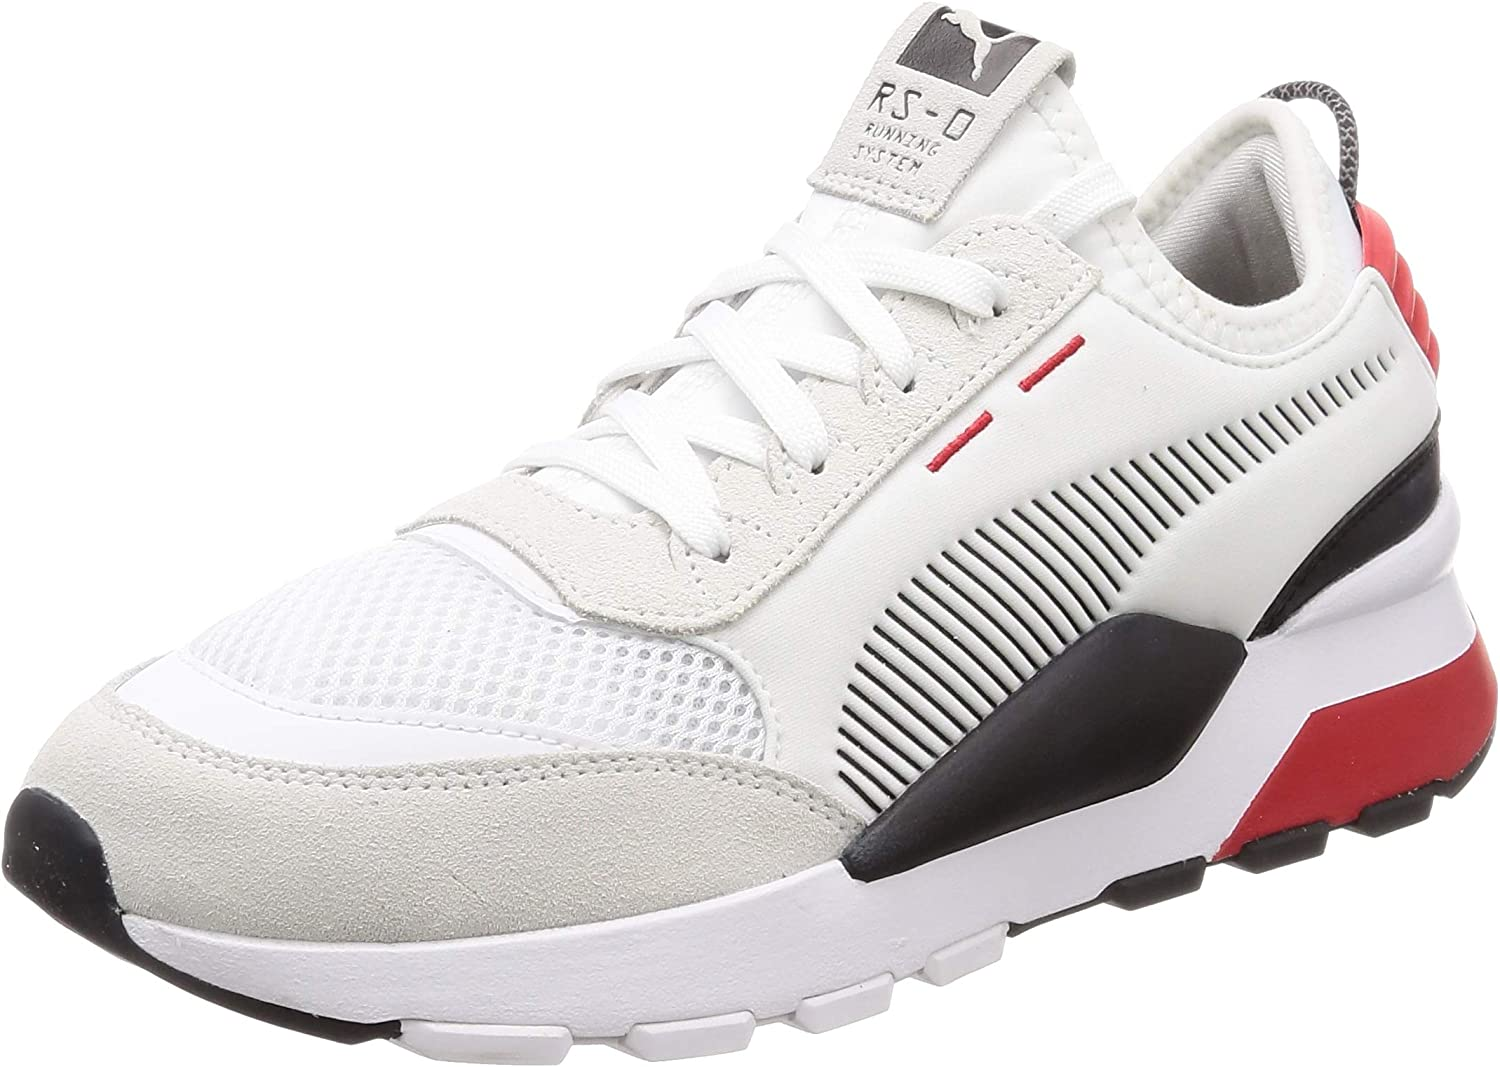 PUMA RS-0 Winter Inj Toys, Zapatillas Unisex Adulto: Amazon.es ...